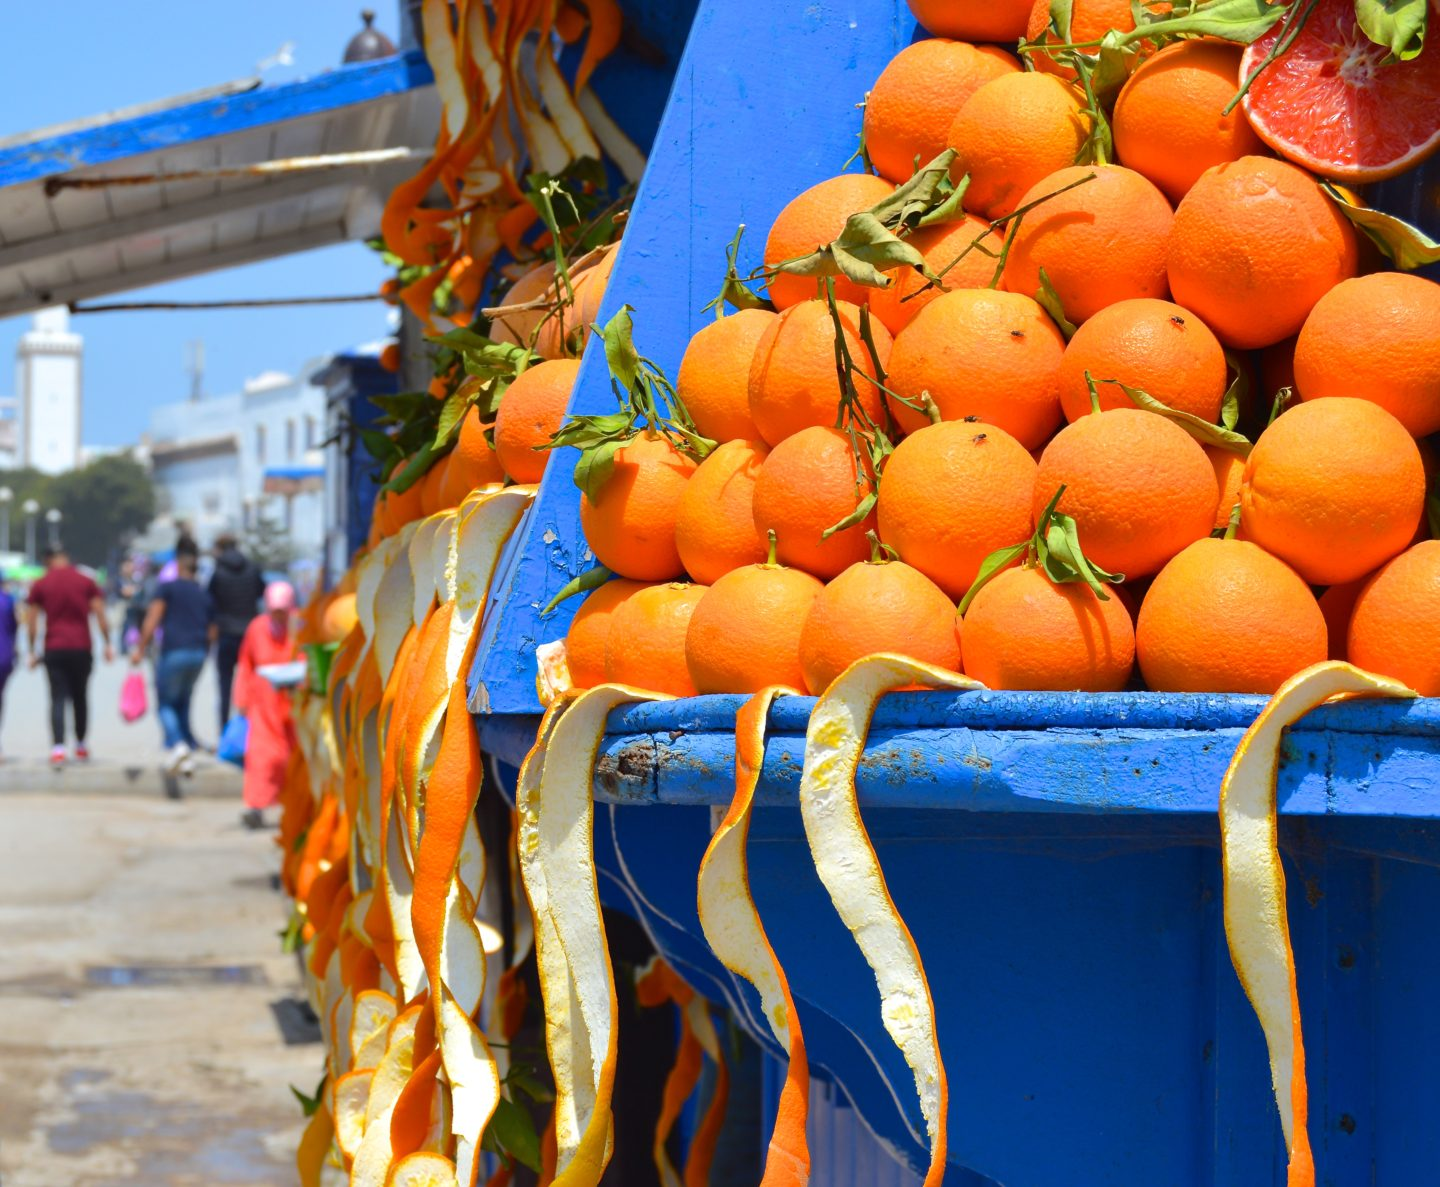 Plenty of oranges to go around. Fresh squeezed orange juice available while walking down the coastal alleyway.